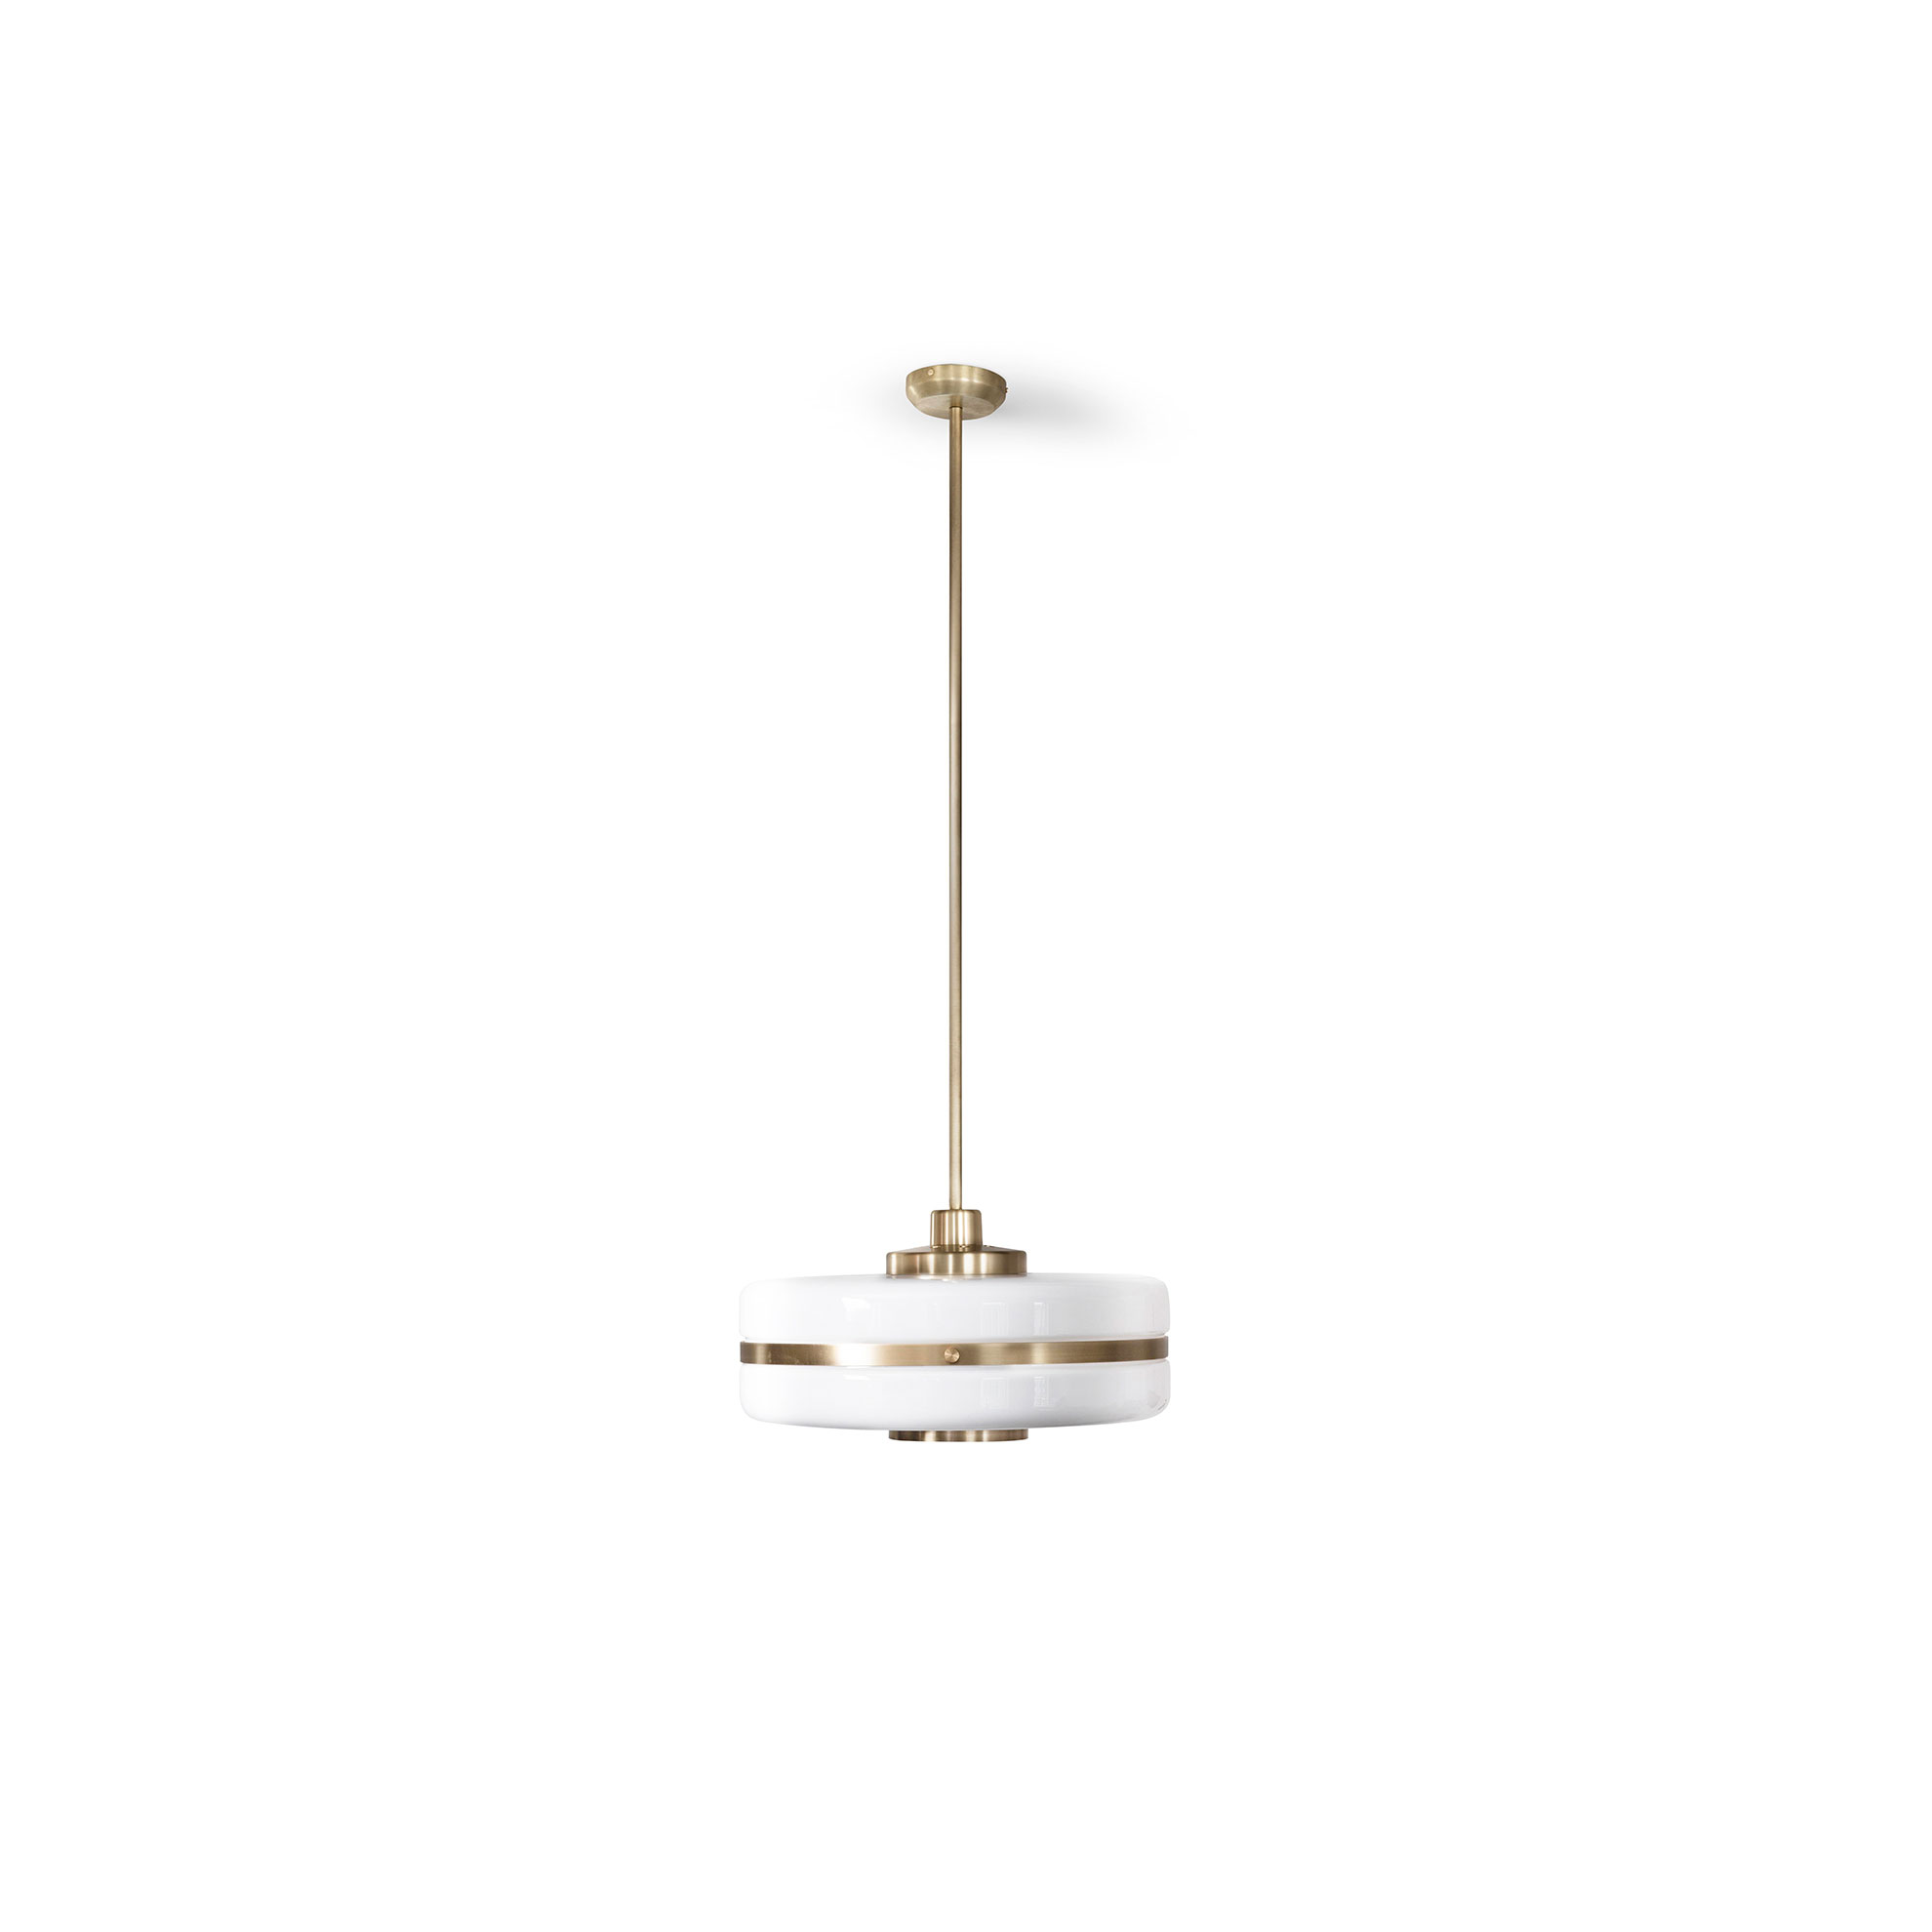 Masina Pendant Lamp - Classically chic, the Masina Pendant Lamp features gleaming machined brass detailing and a large opal glass shade. Perfectly positioned in a central living area or over a bedside table, it will inject a sophisticated feel to any space.    | Matter of Stuff